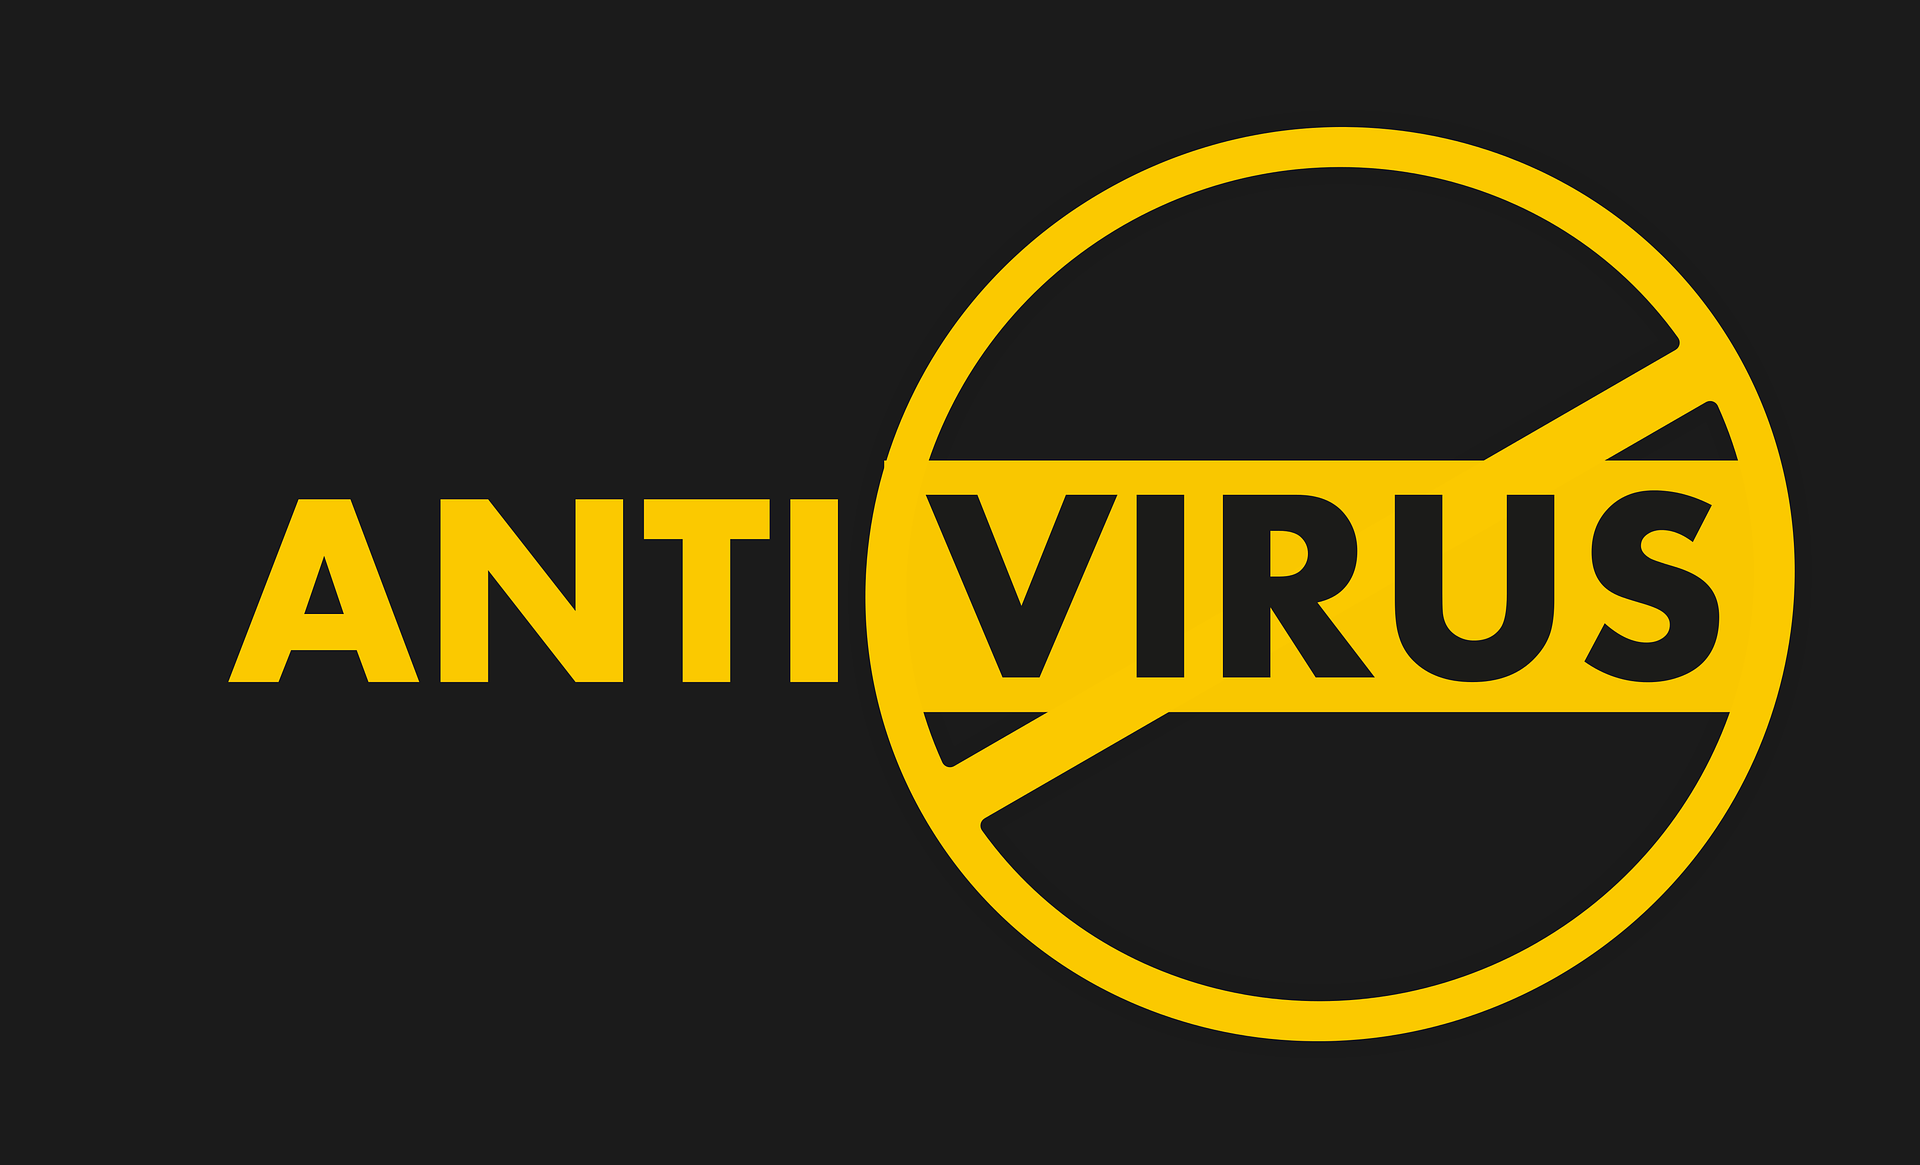 Best Free Antivirus for Android - The Ultimate Guide